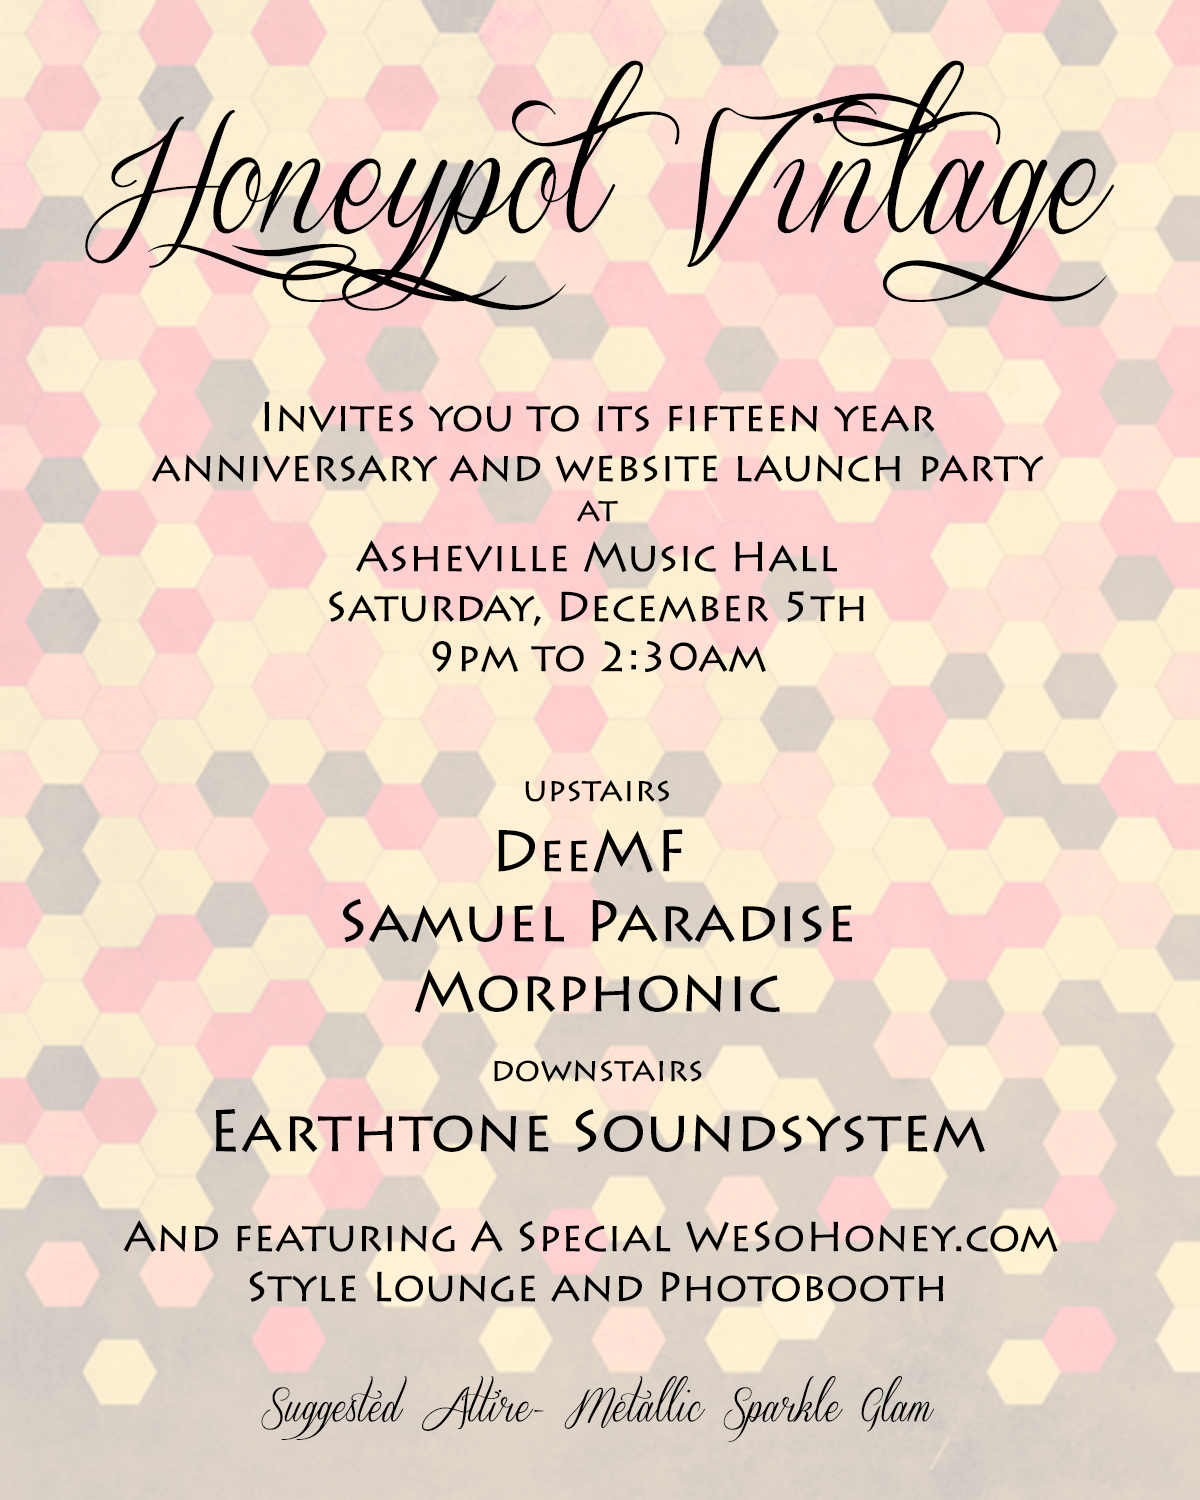 Honeypot Party!